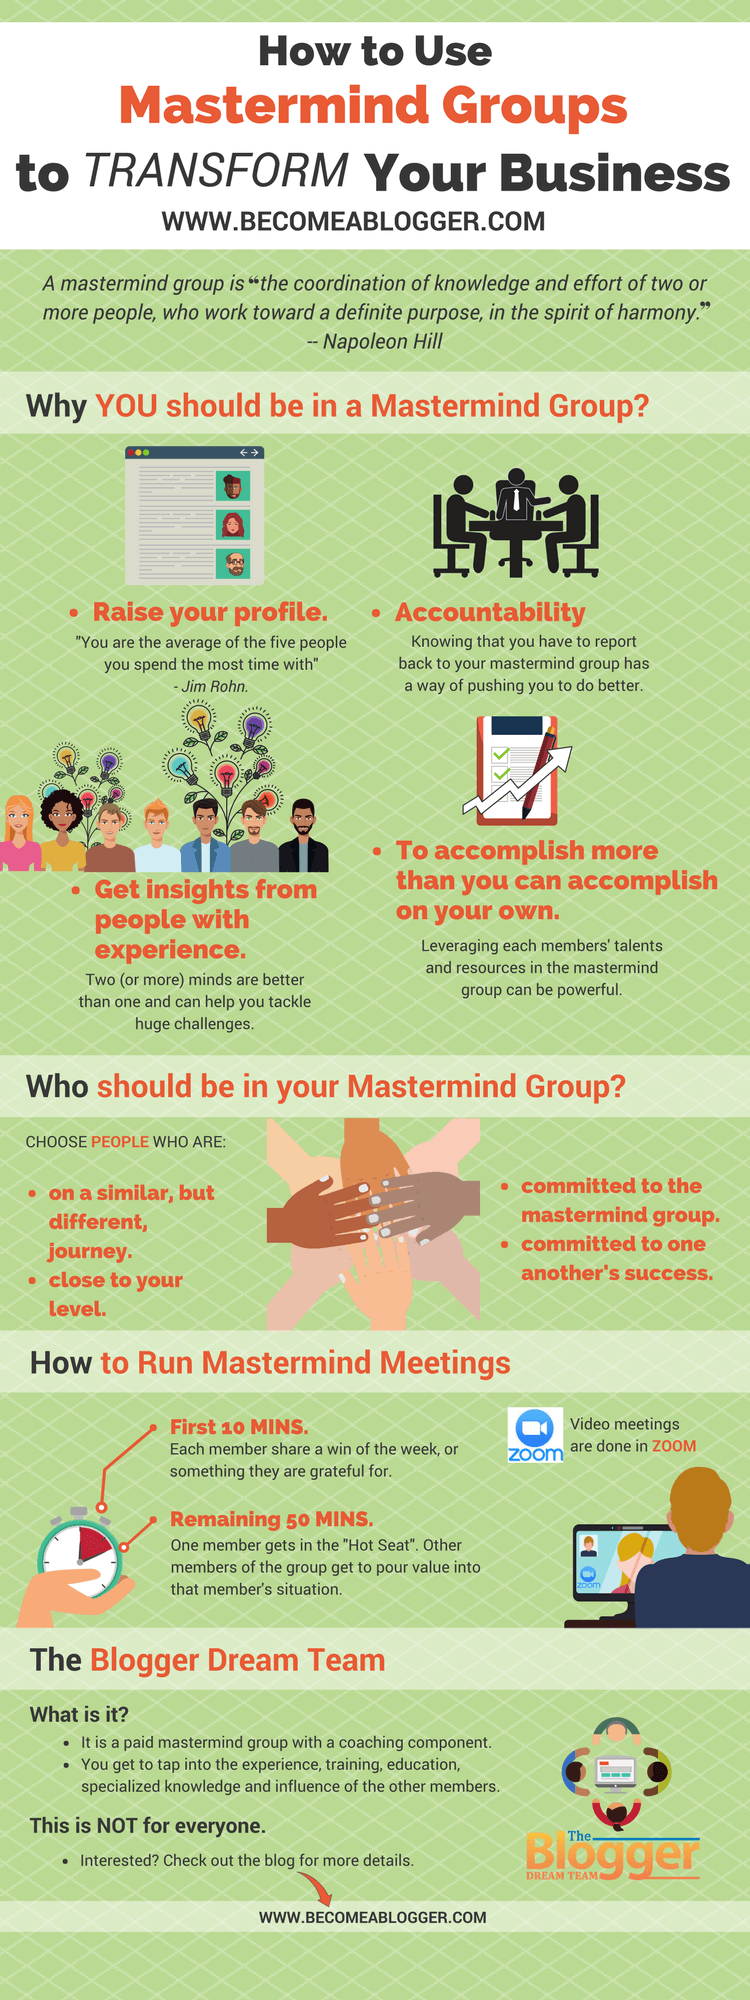 Mastermind Groups for Your Business